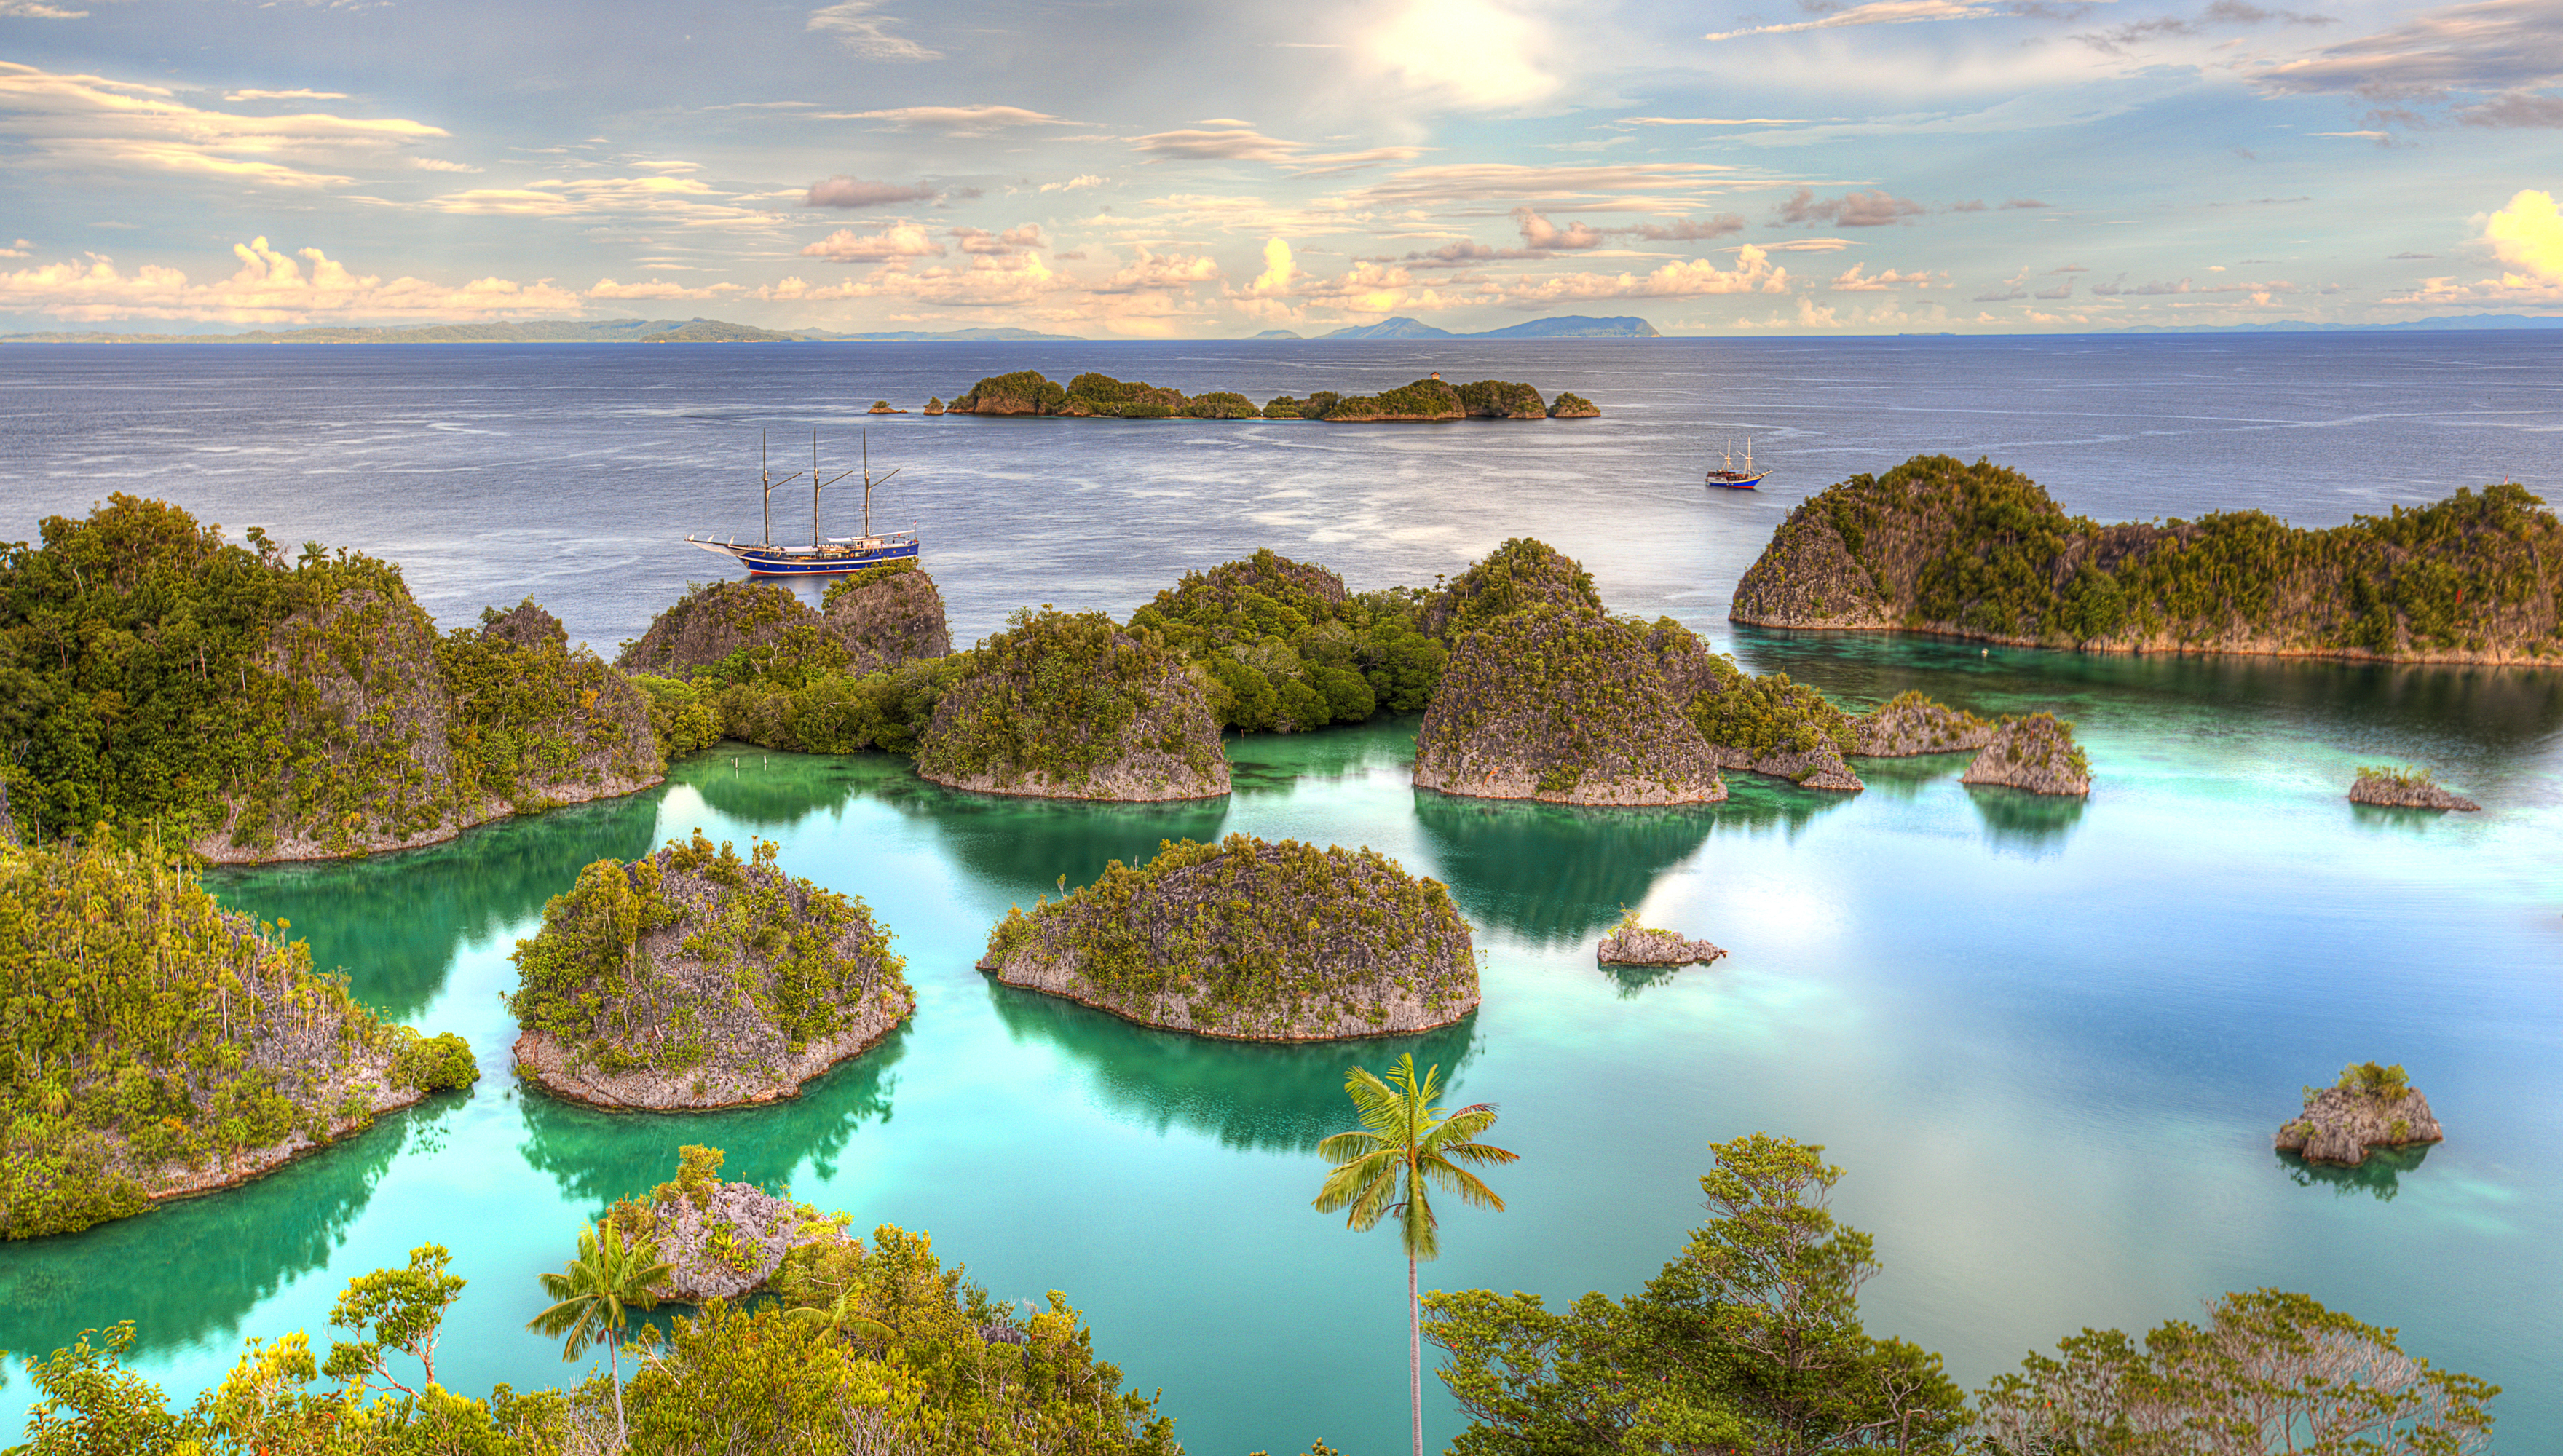 When is the Best Time to Visit Indonesia?